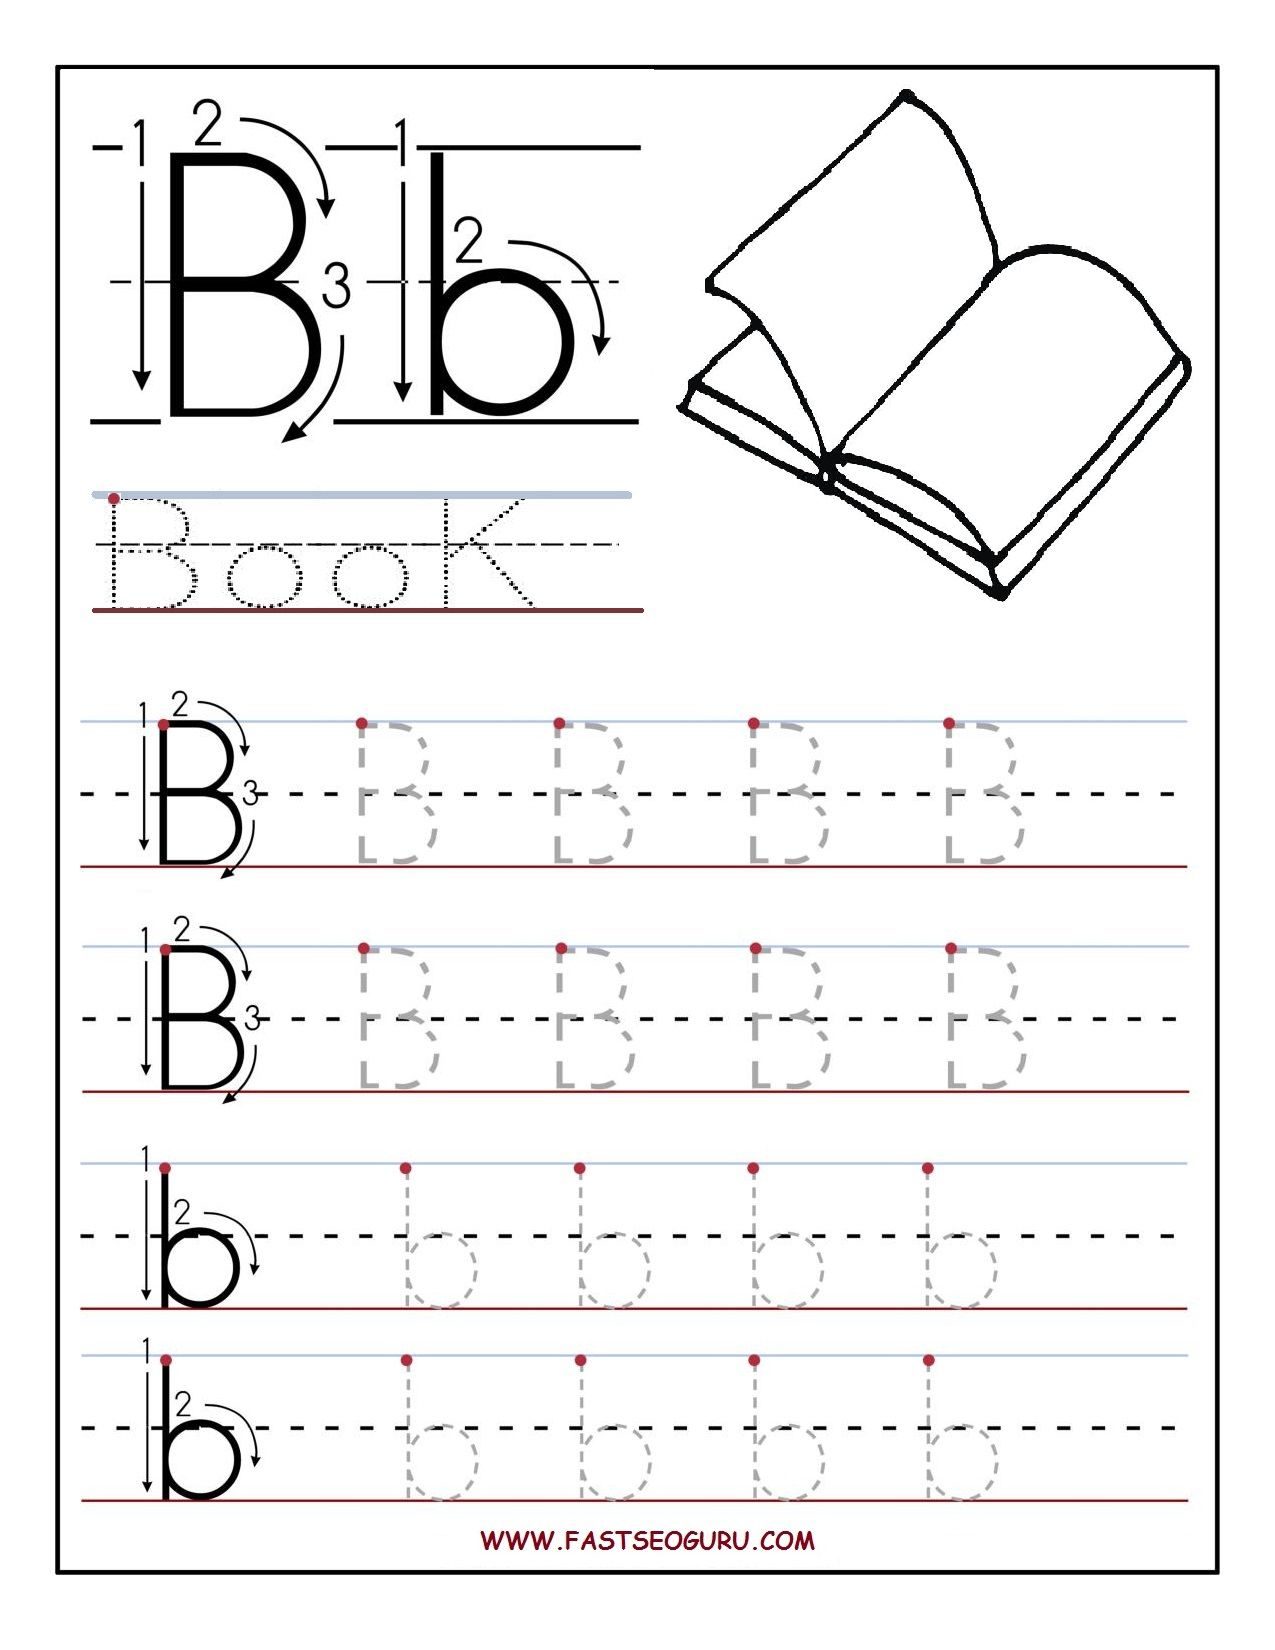 The letter a tracing worksheets for preschool - Letter B Worksheets For Preschoolers Printable Letter B Tracing